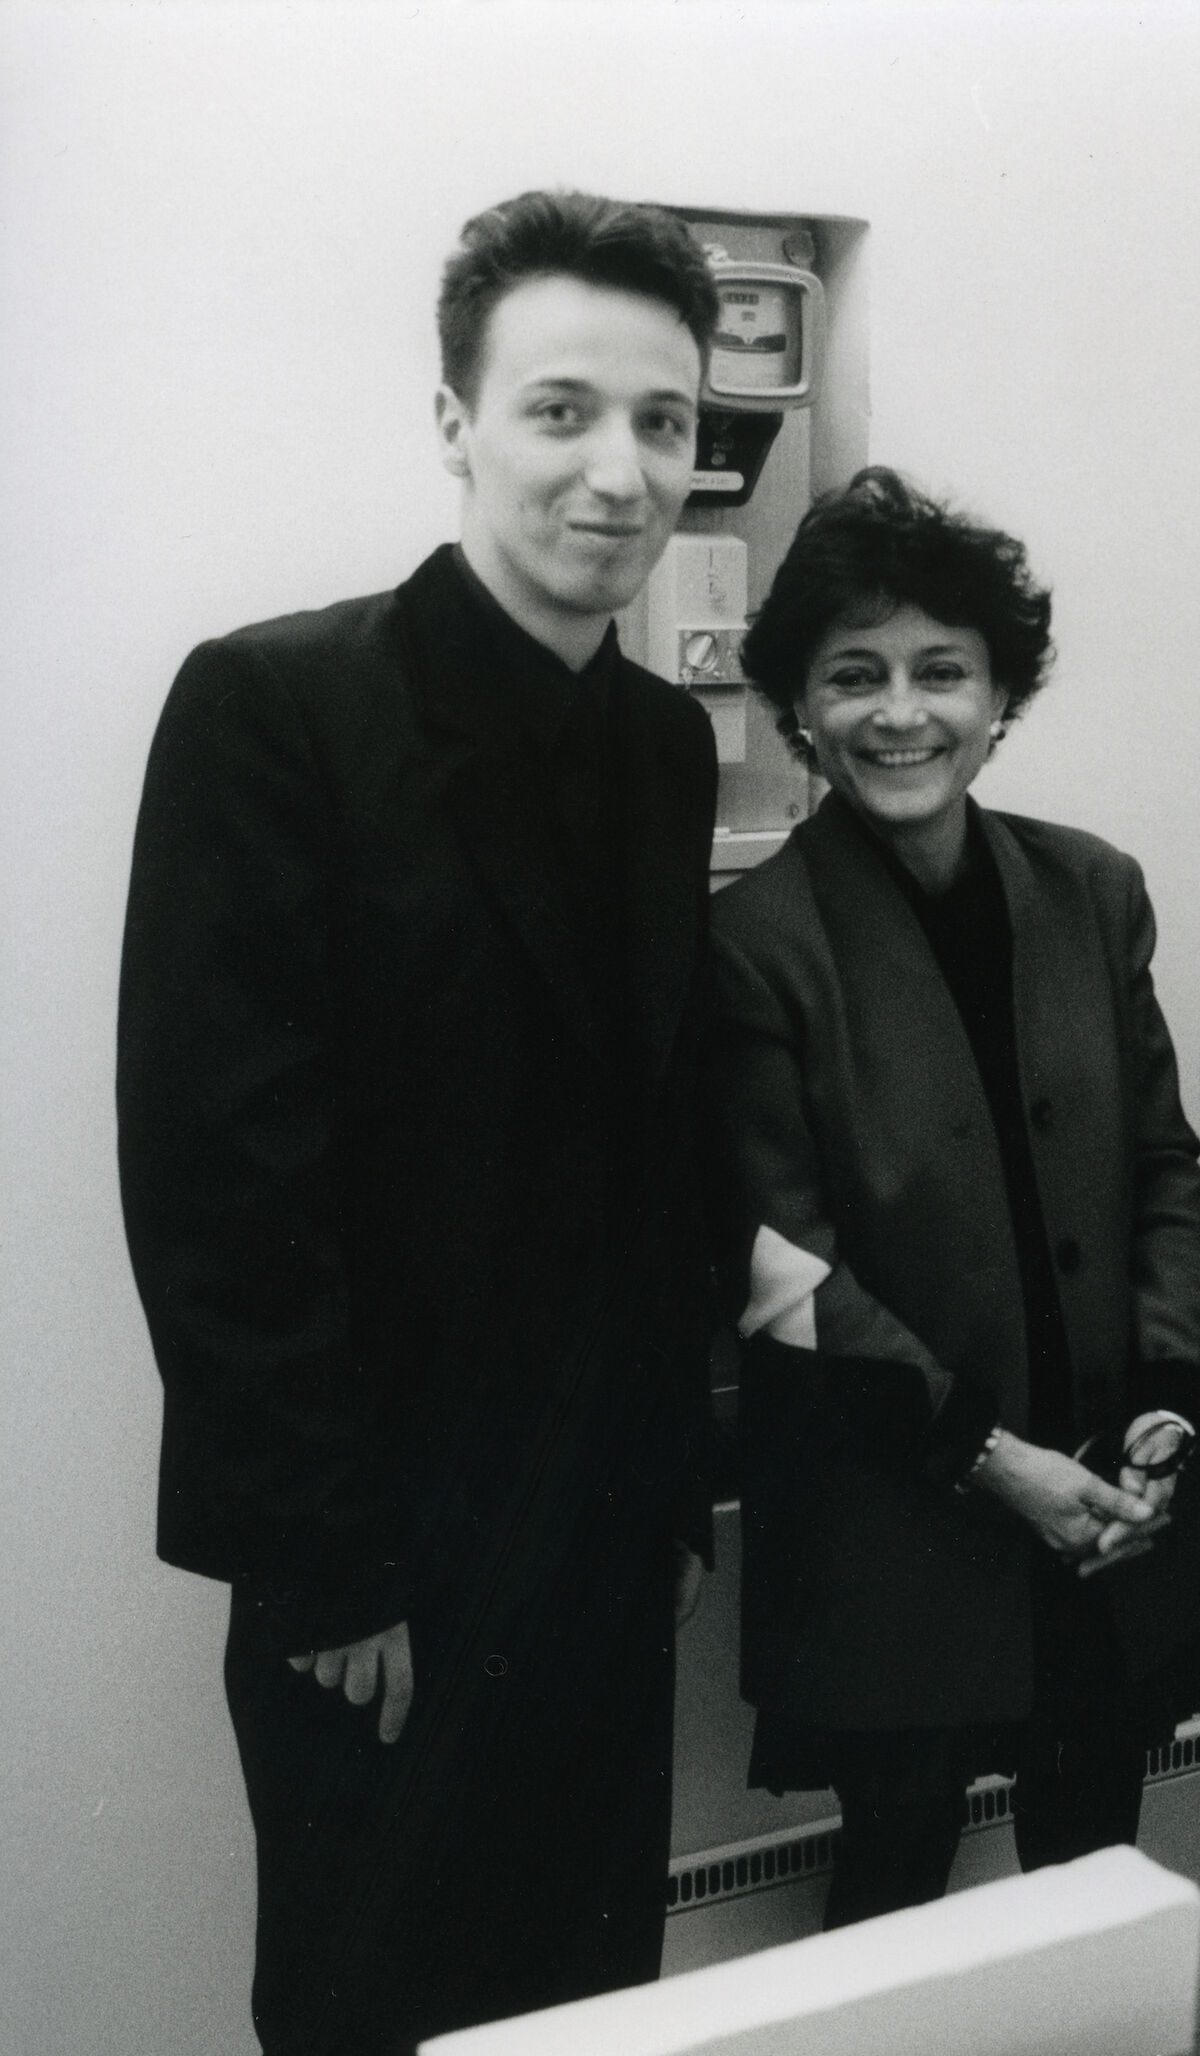 Emmanuel Perrotin with Marie-Hélène Montenay in the gallery space rue de l'Ancienne Comédie in 1992. Courtesy of Perrotin.